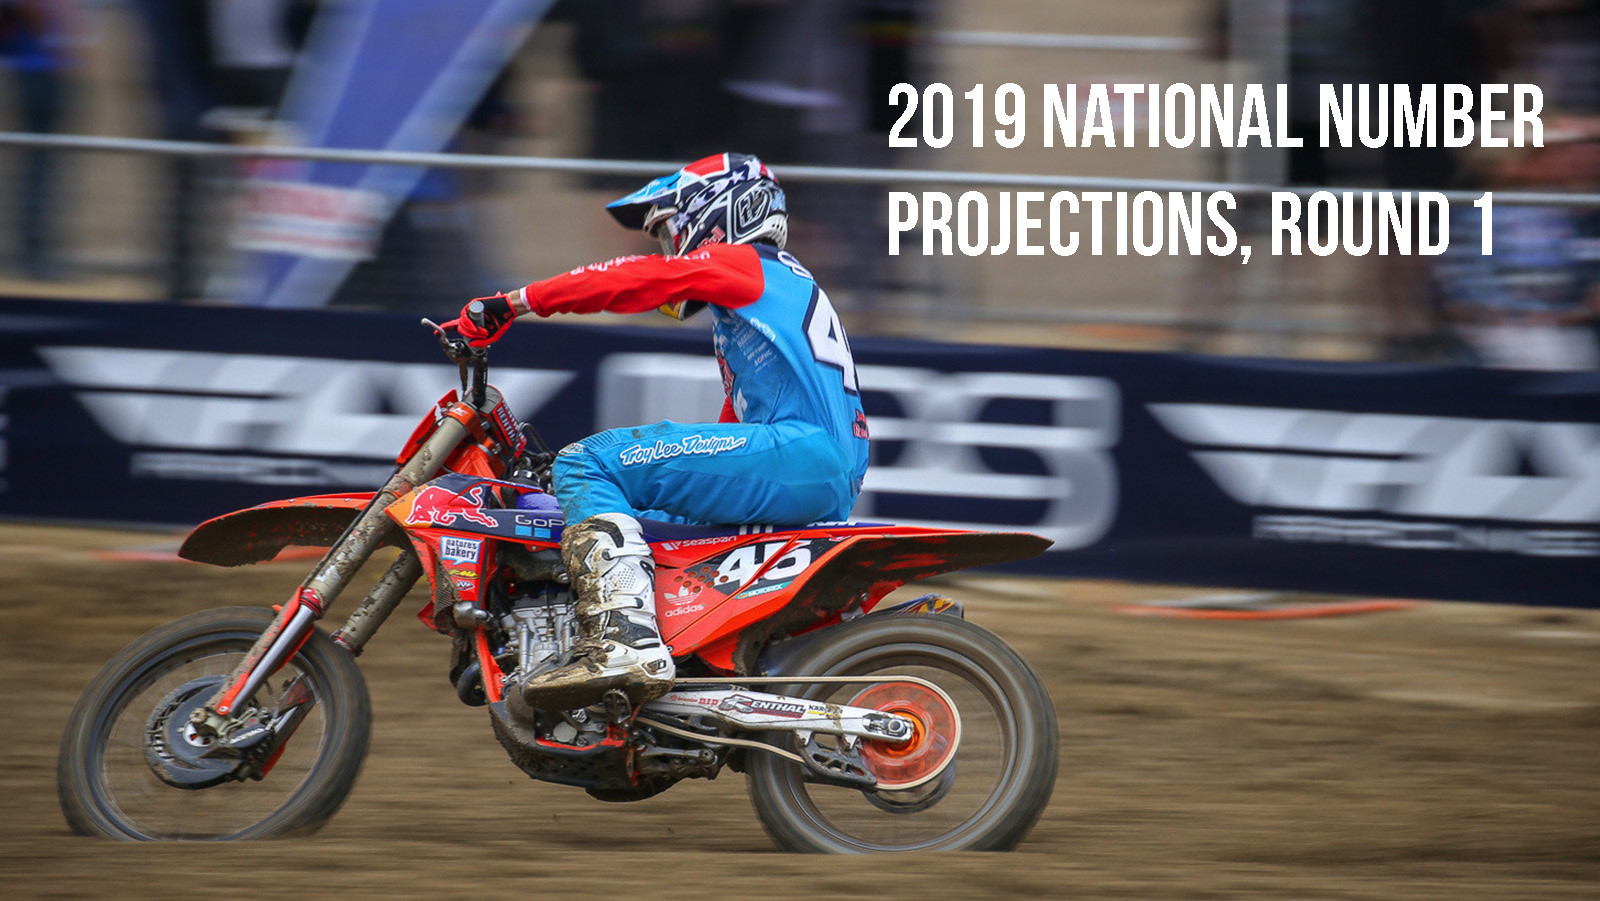 2019 ama national number projections round 1